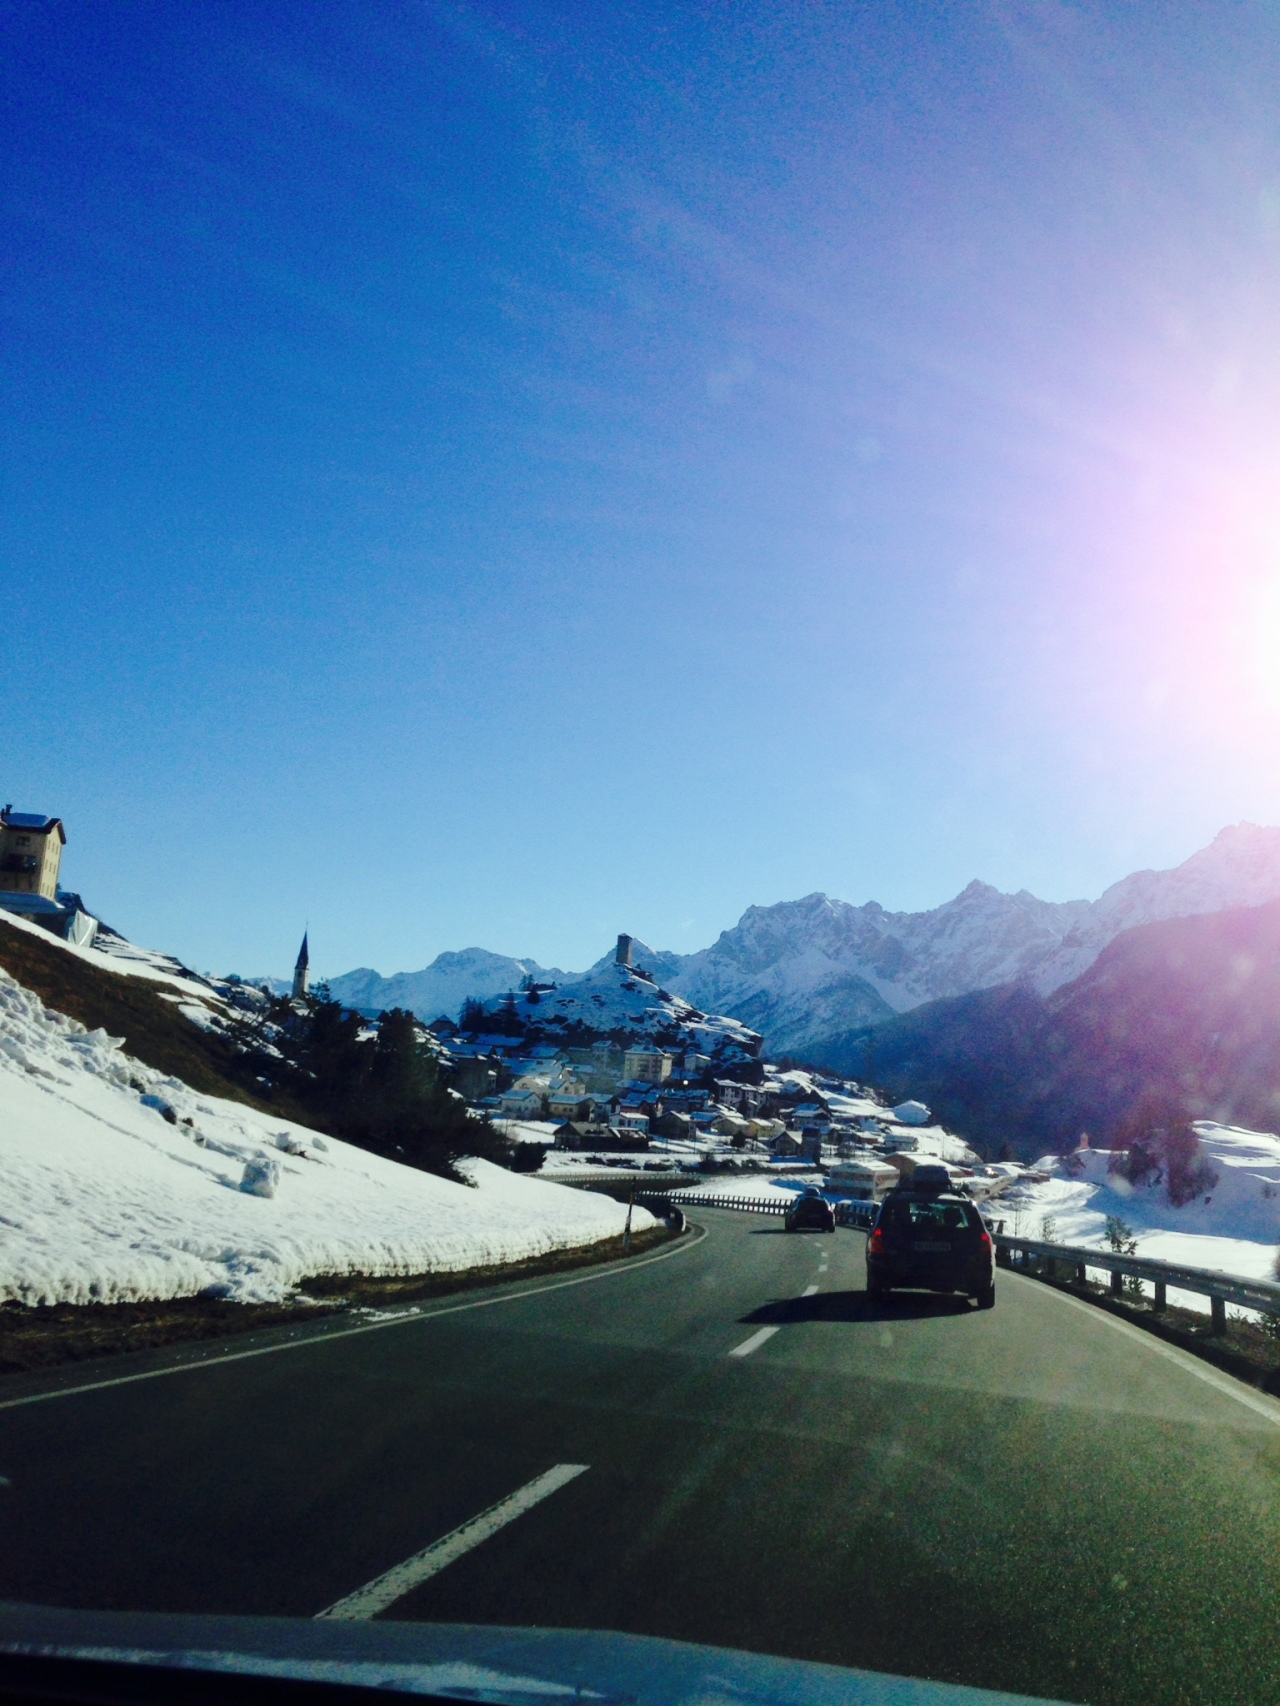 Driving into the Engadin Valley.